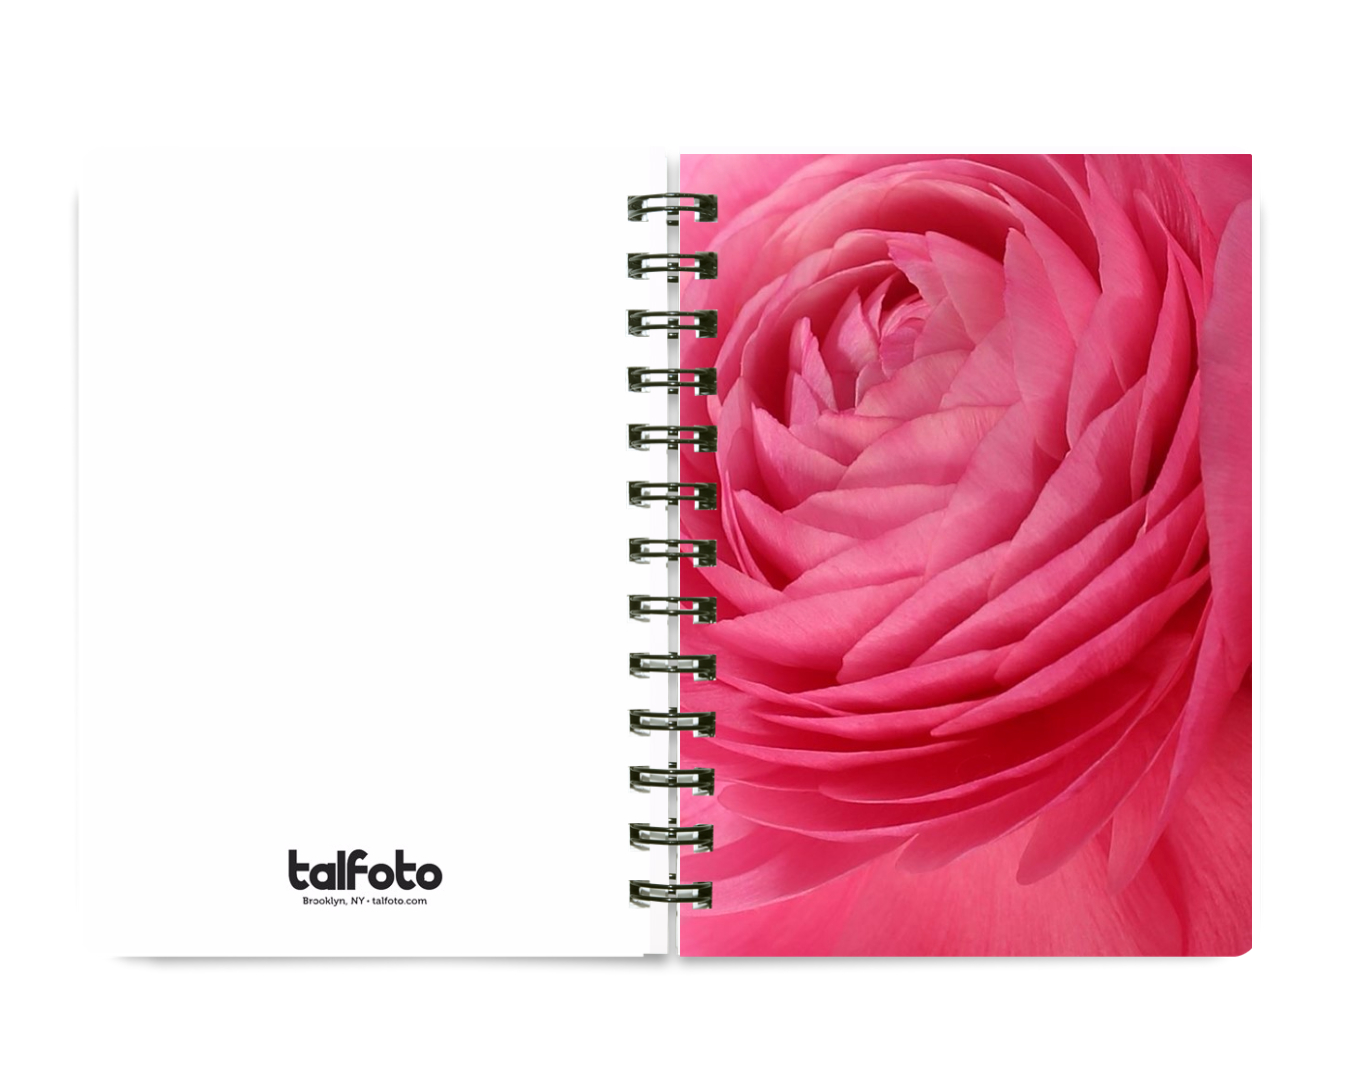 NEW 5x7 Spiral Notebook #NB04 BEST SELLER